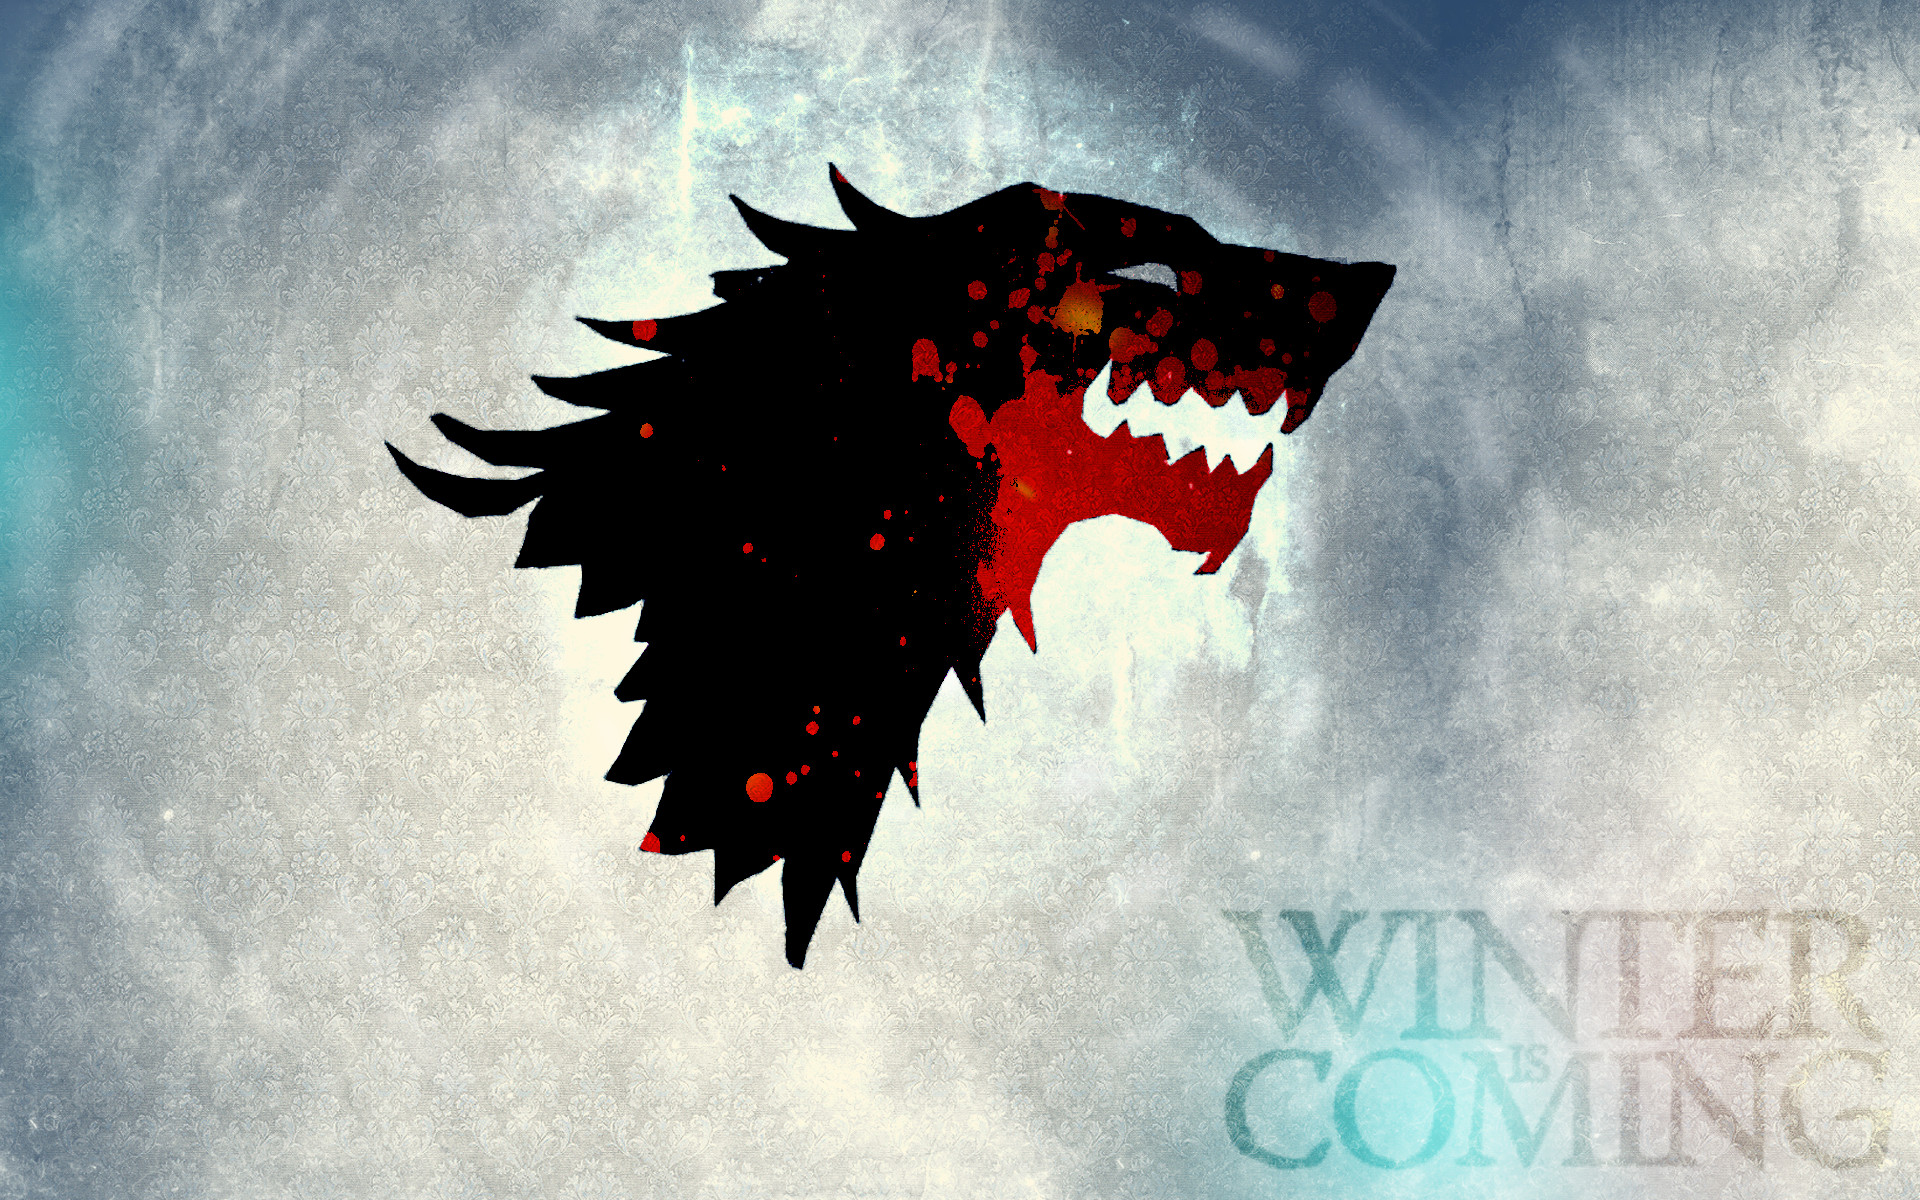 Res: 1920x1200, House Stark wallpaper by GeniusMage House Stark wallpaper by GeniusMage